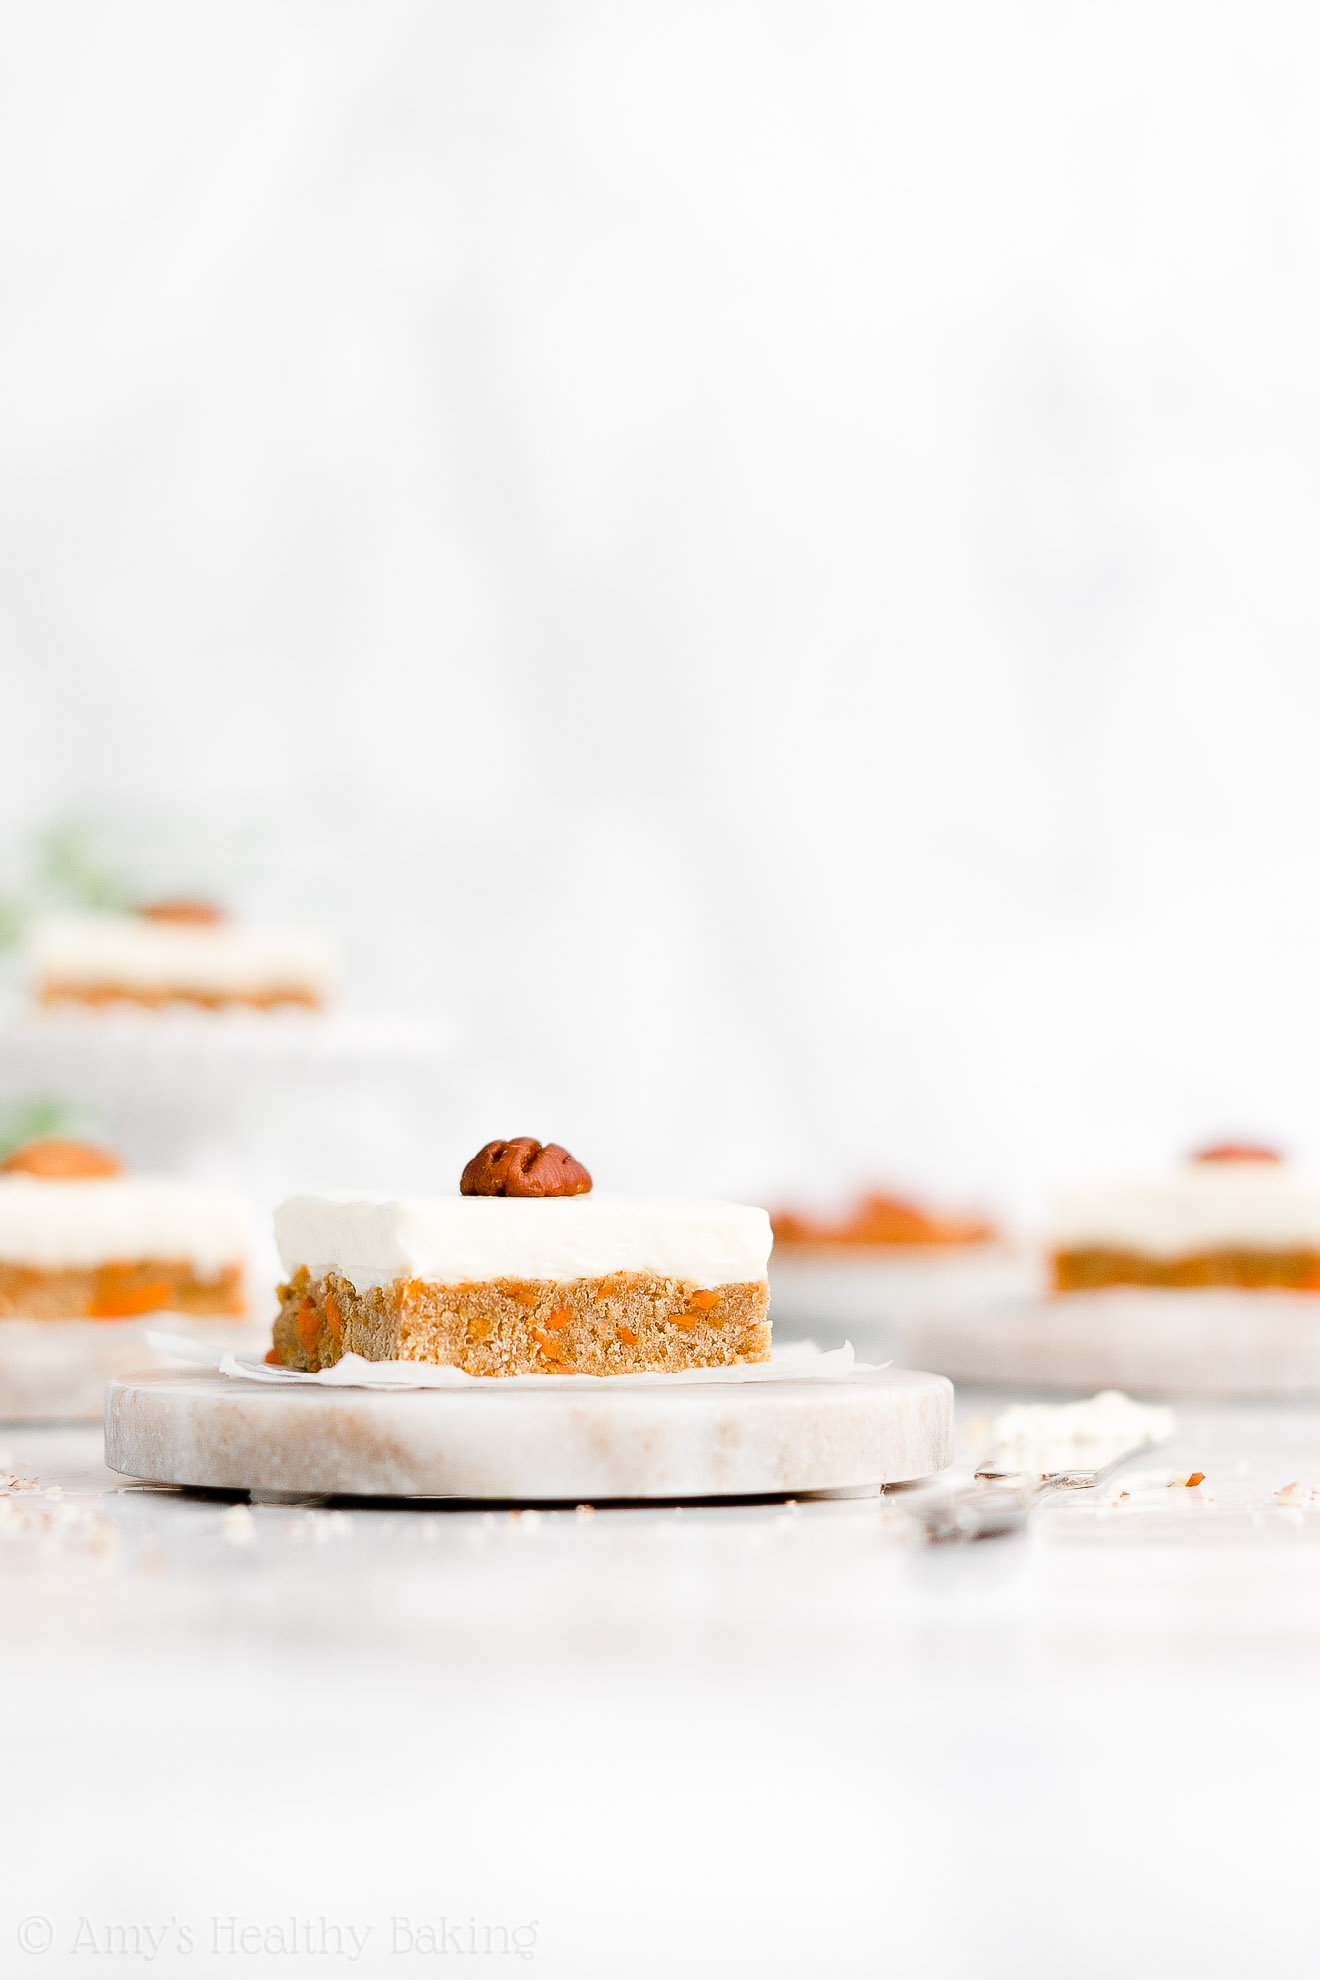 Easy Healthy Low Sugar Soft Carrot Cake Cookie Bars + Cream Cheese Frosting